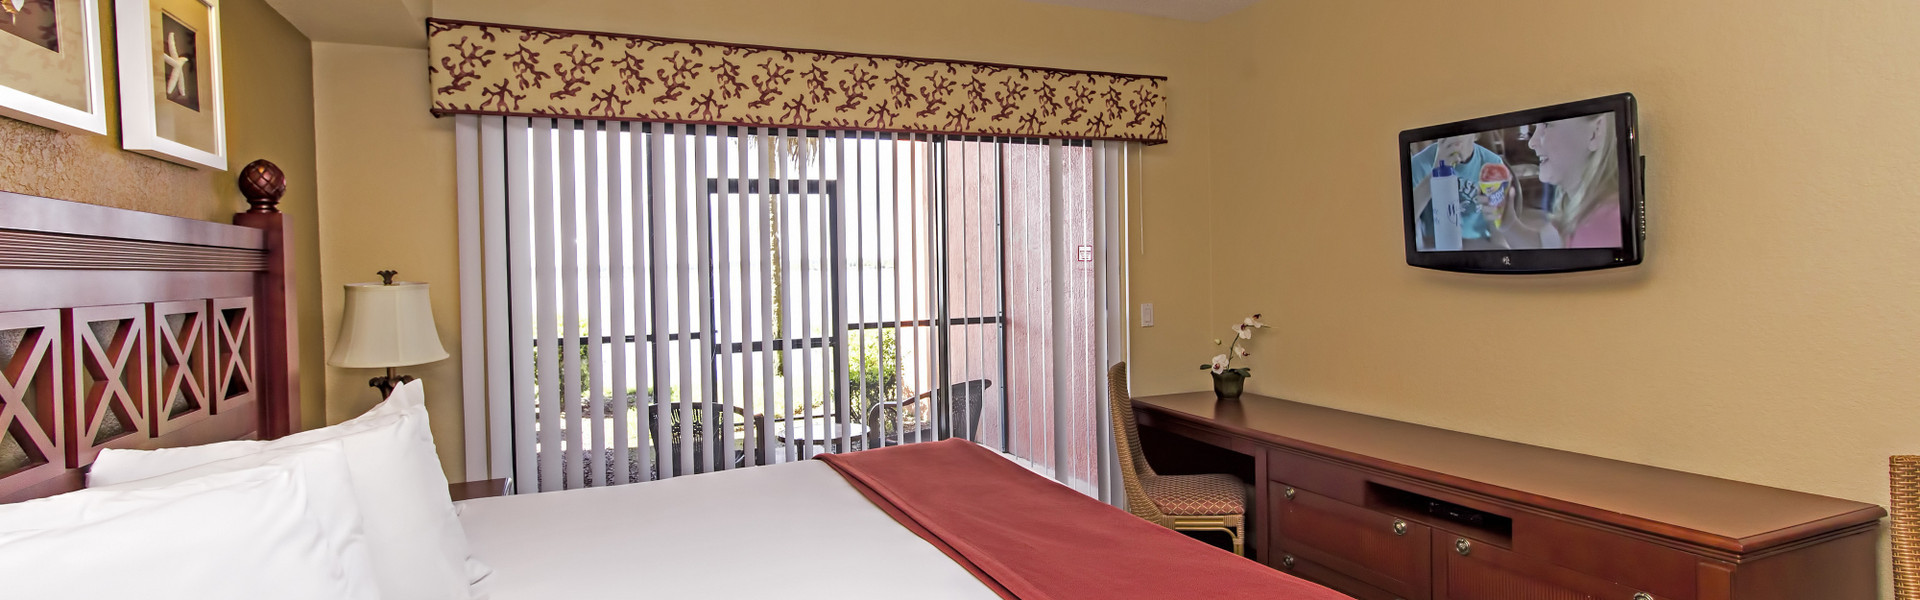 Hotel With 2 Bedroom Villa Suites Near Orlando | Suites Accommodations